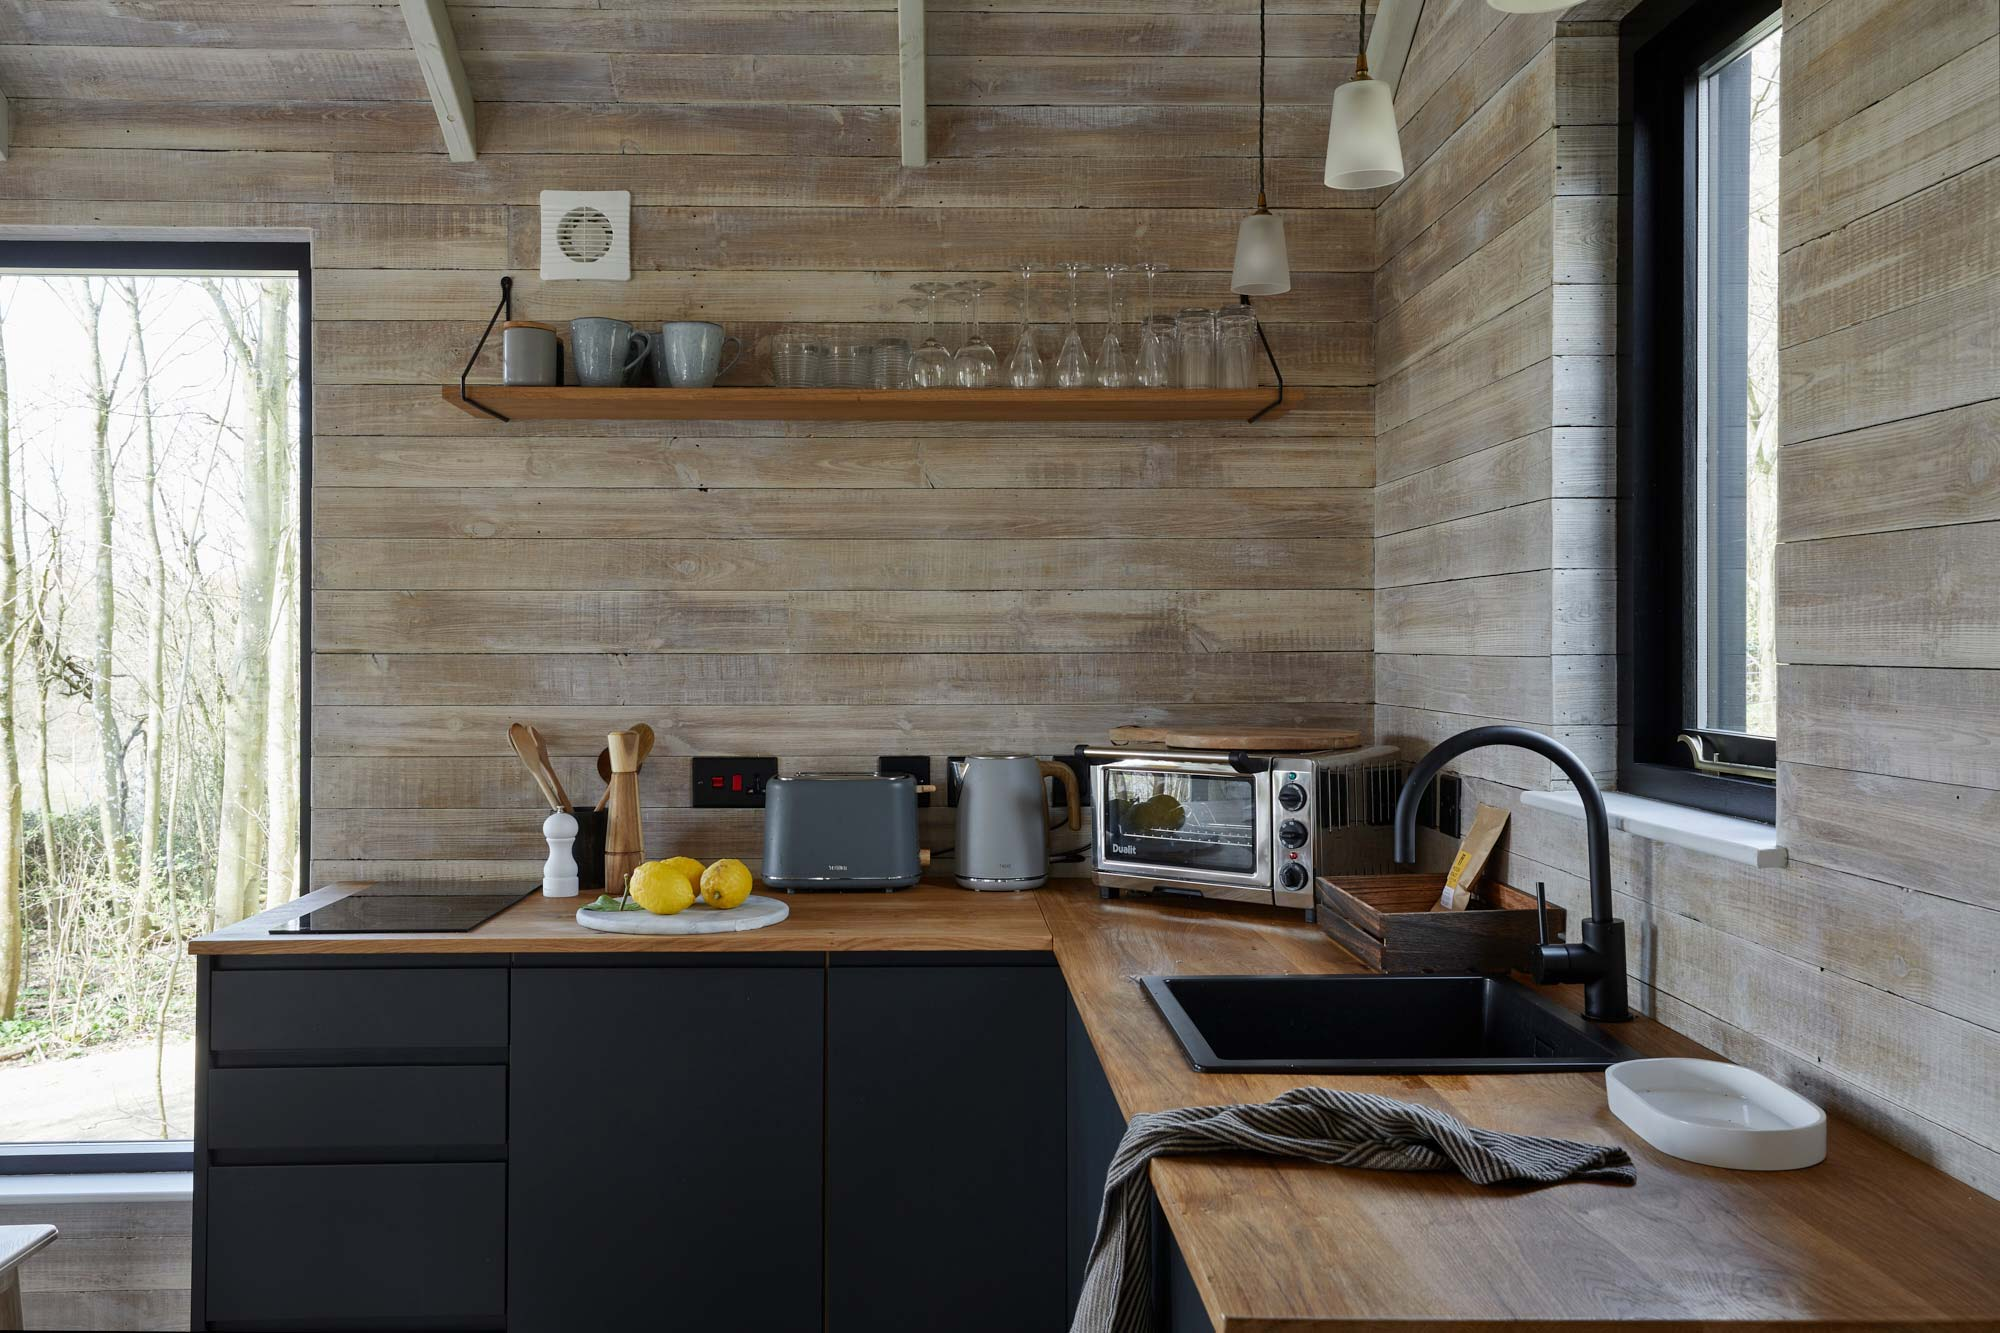 Wall cladding in kitchen